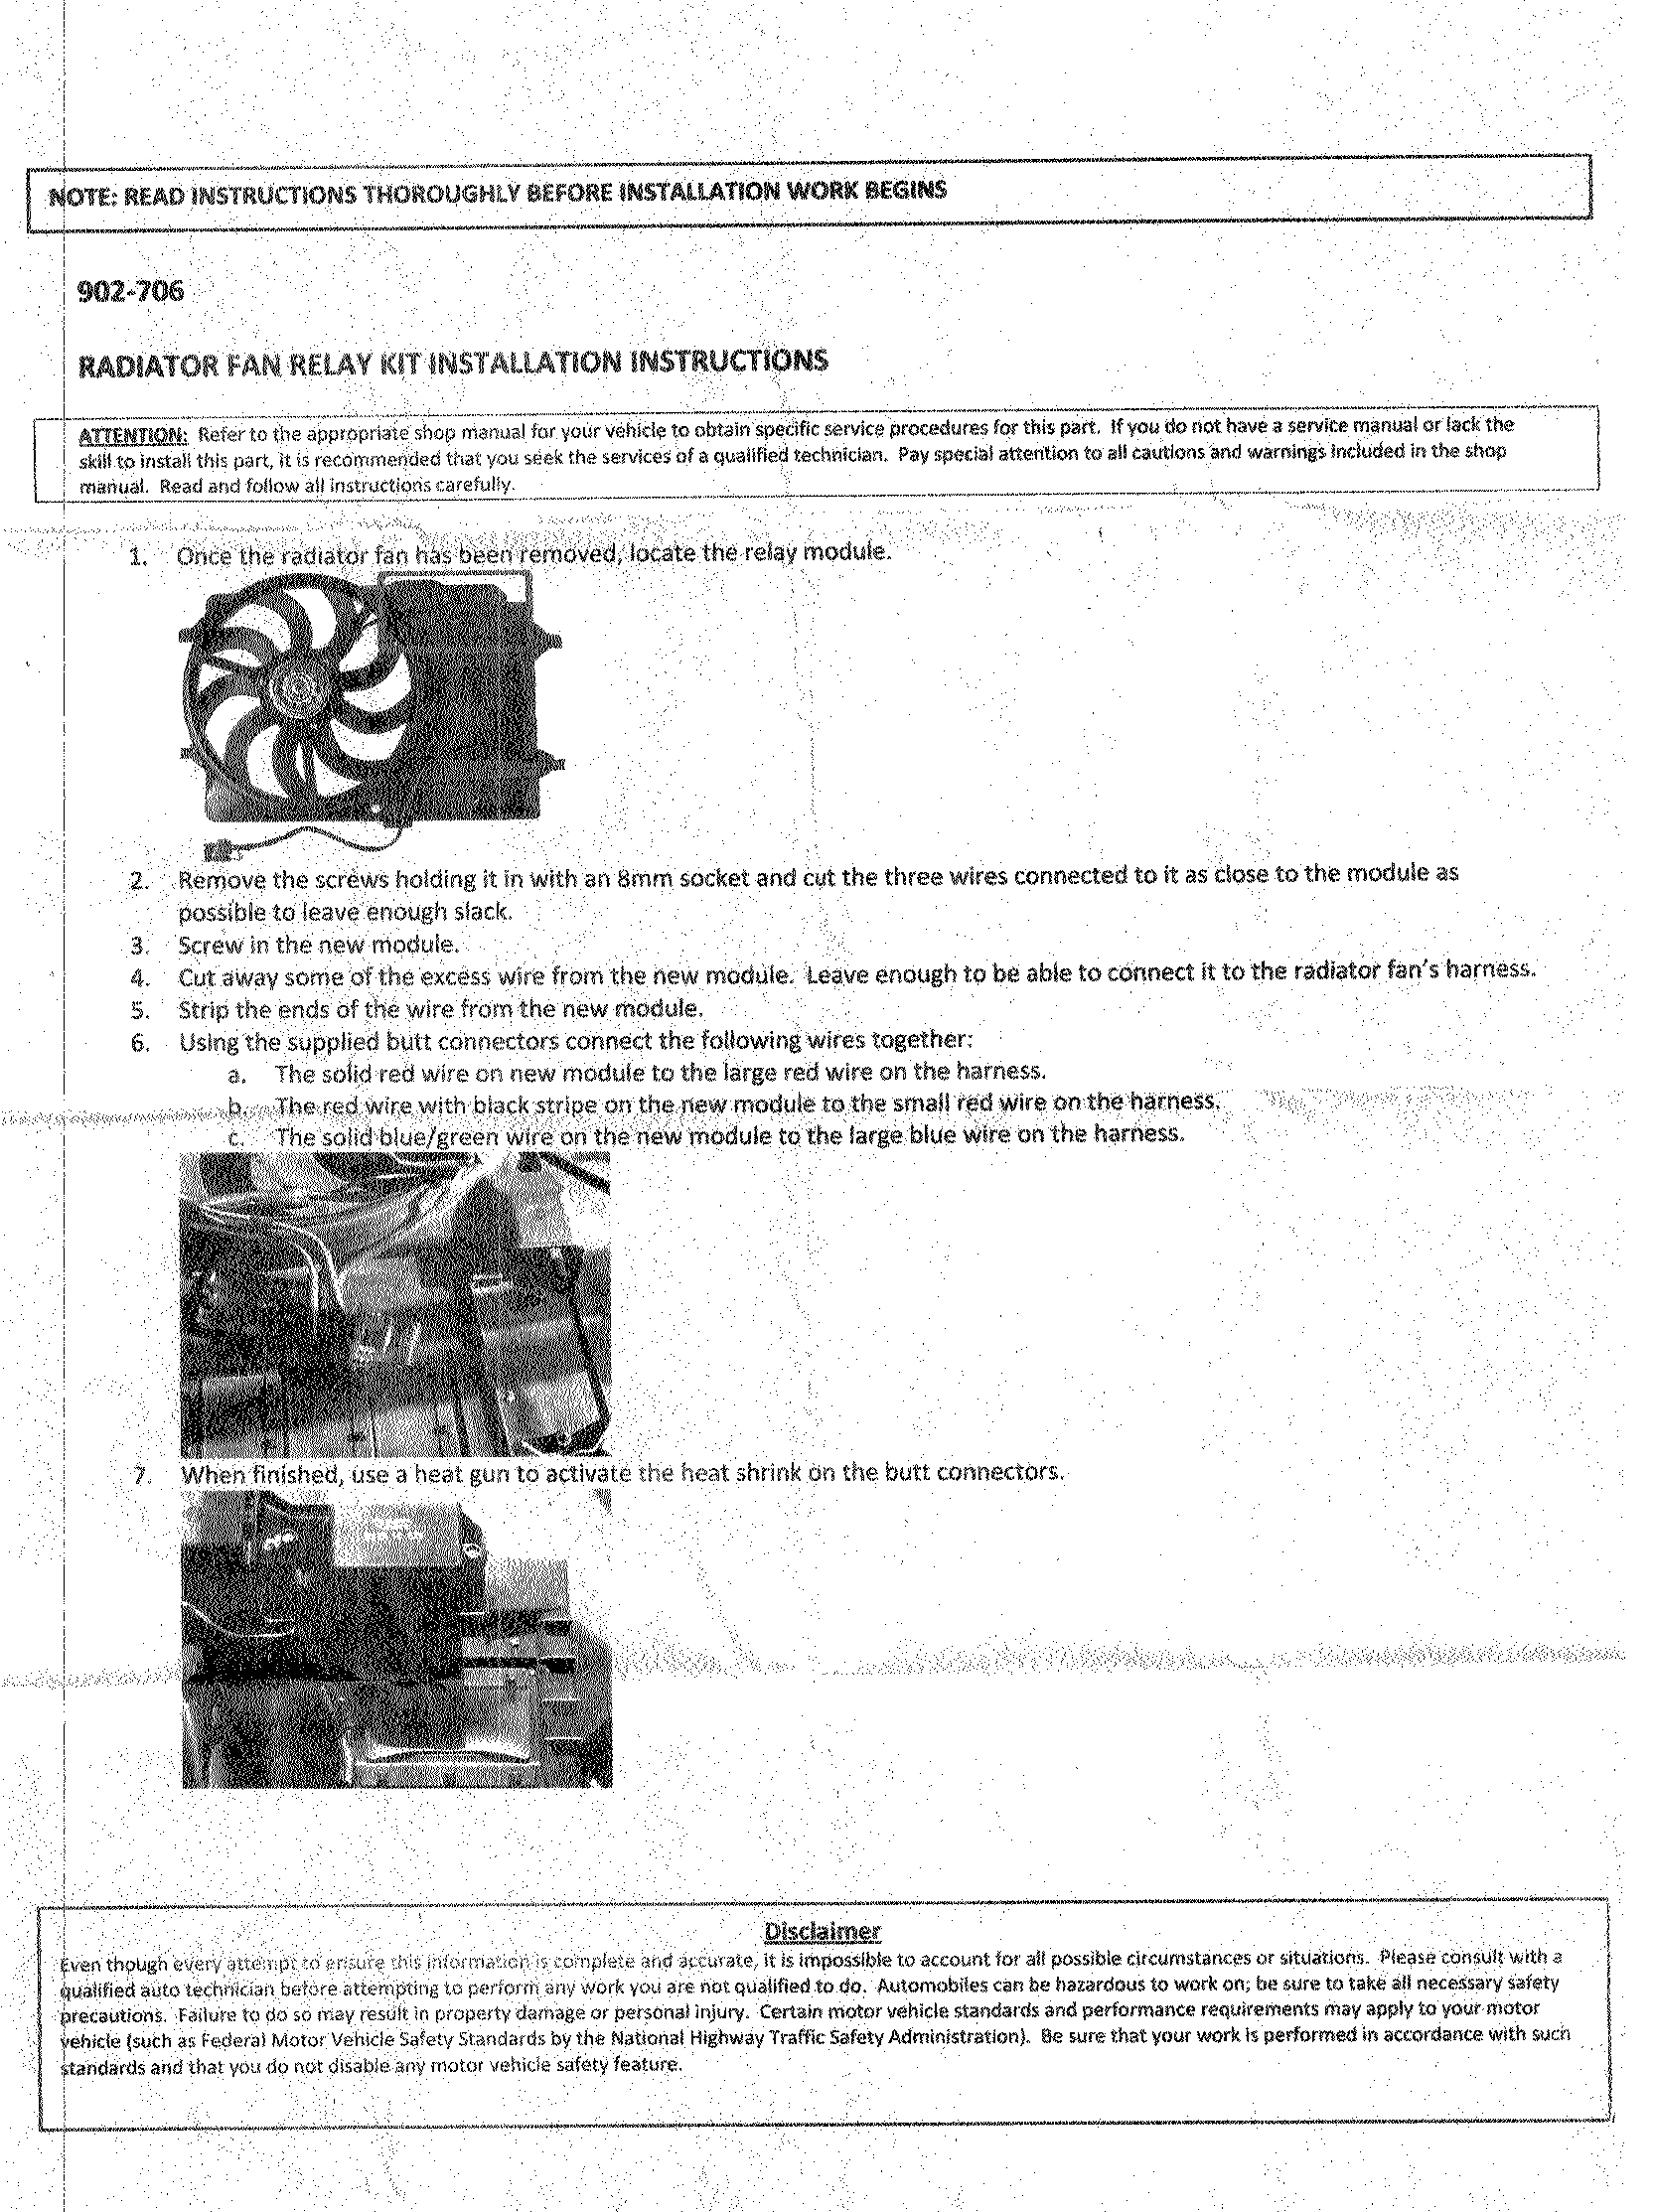 Dorman Radiator Fan Relay Kit Sante Blog Wiring Diagram Directions Note They Say That Supplies Connectors But Do Not Sorry The Wires Should Be